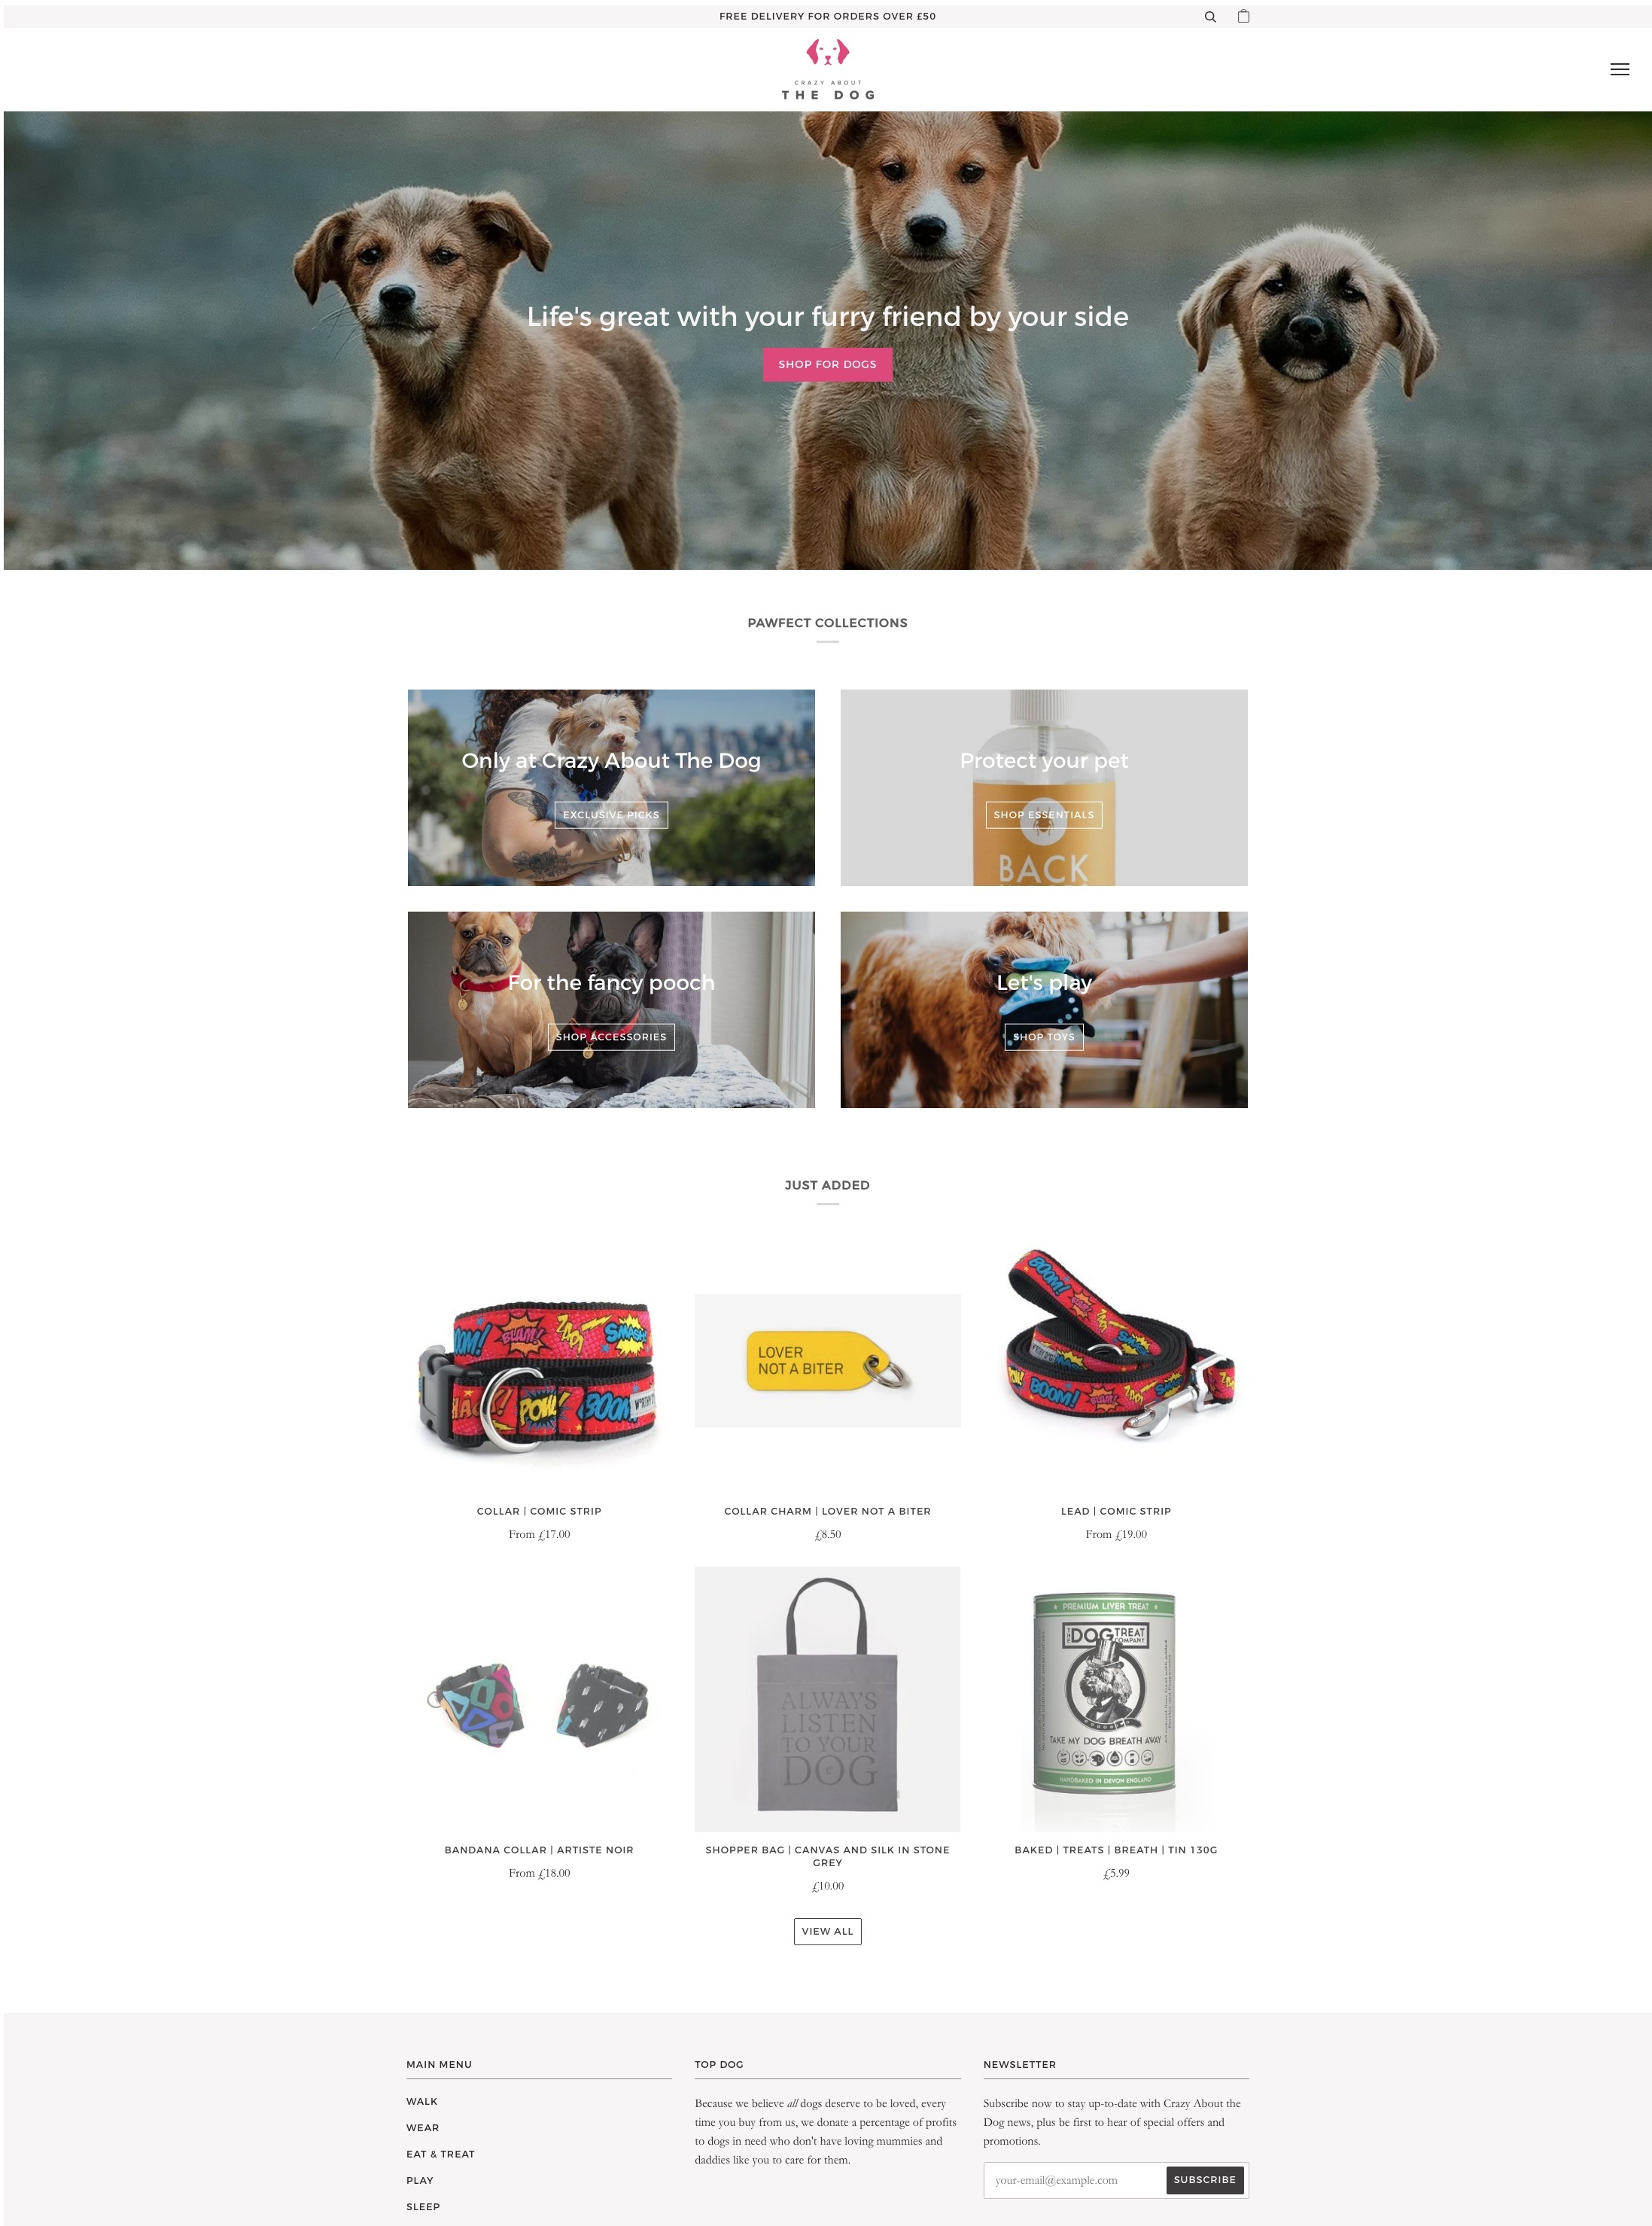 Welcome+to+Crazy+About+the+Dog+online+store2+copy.jpg